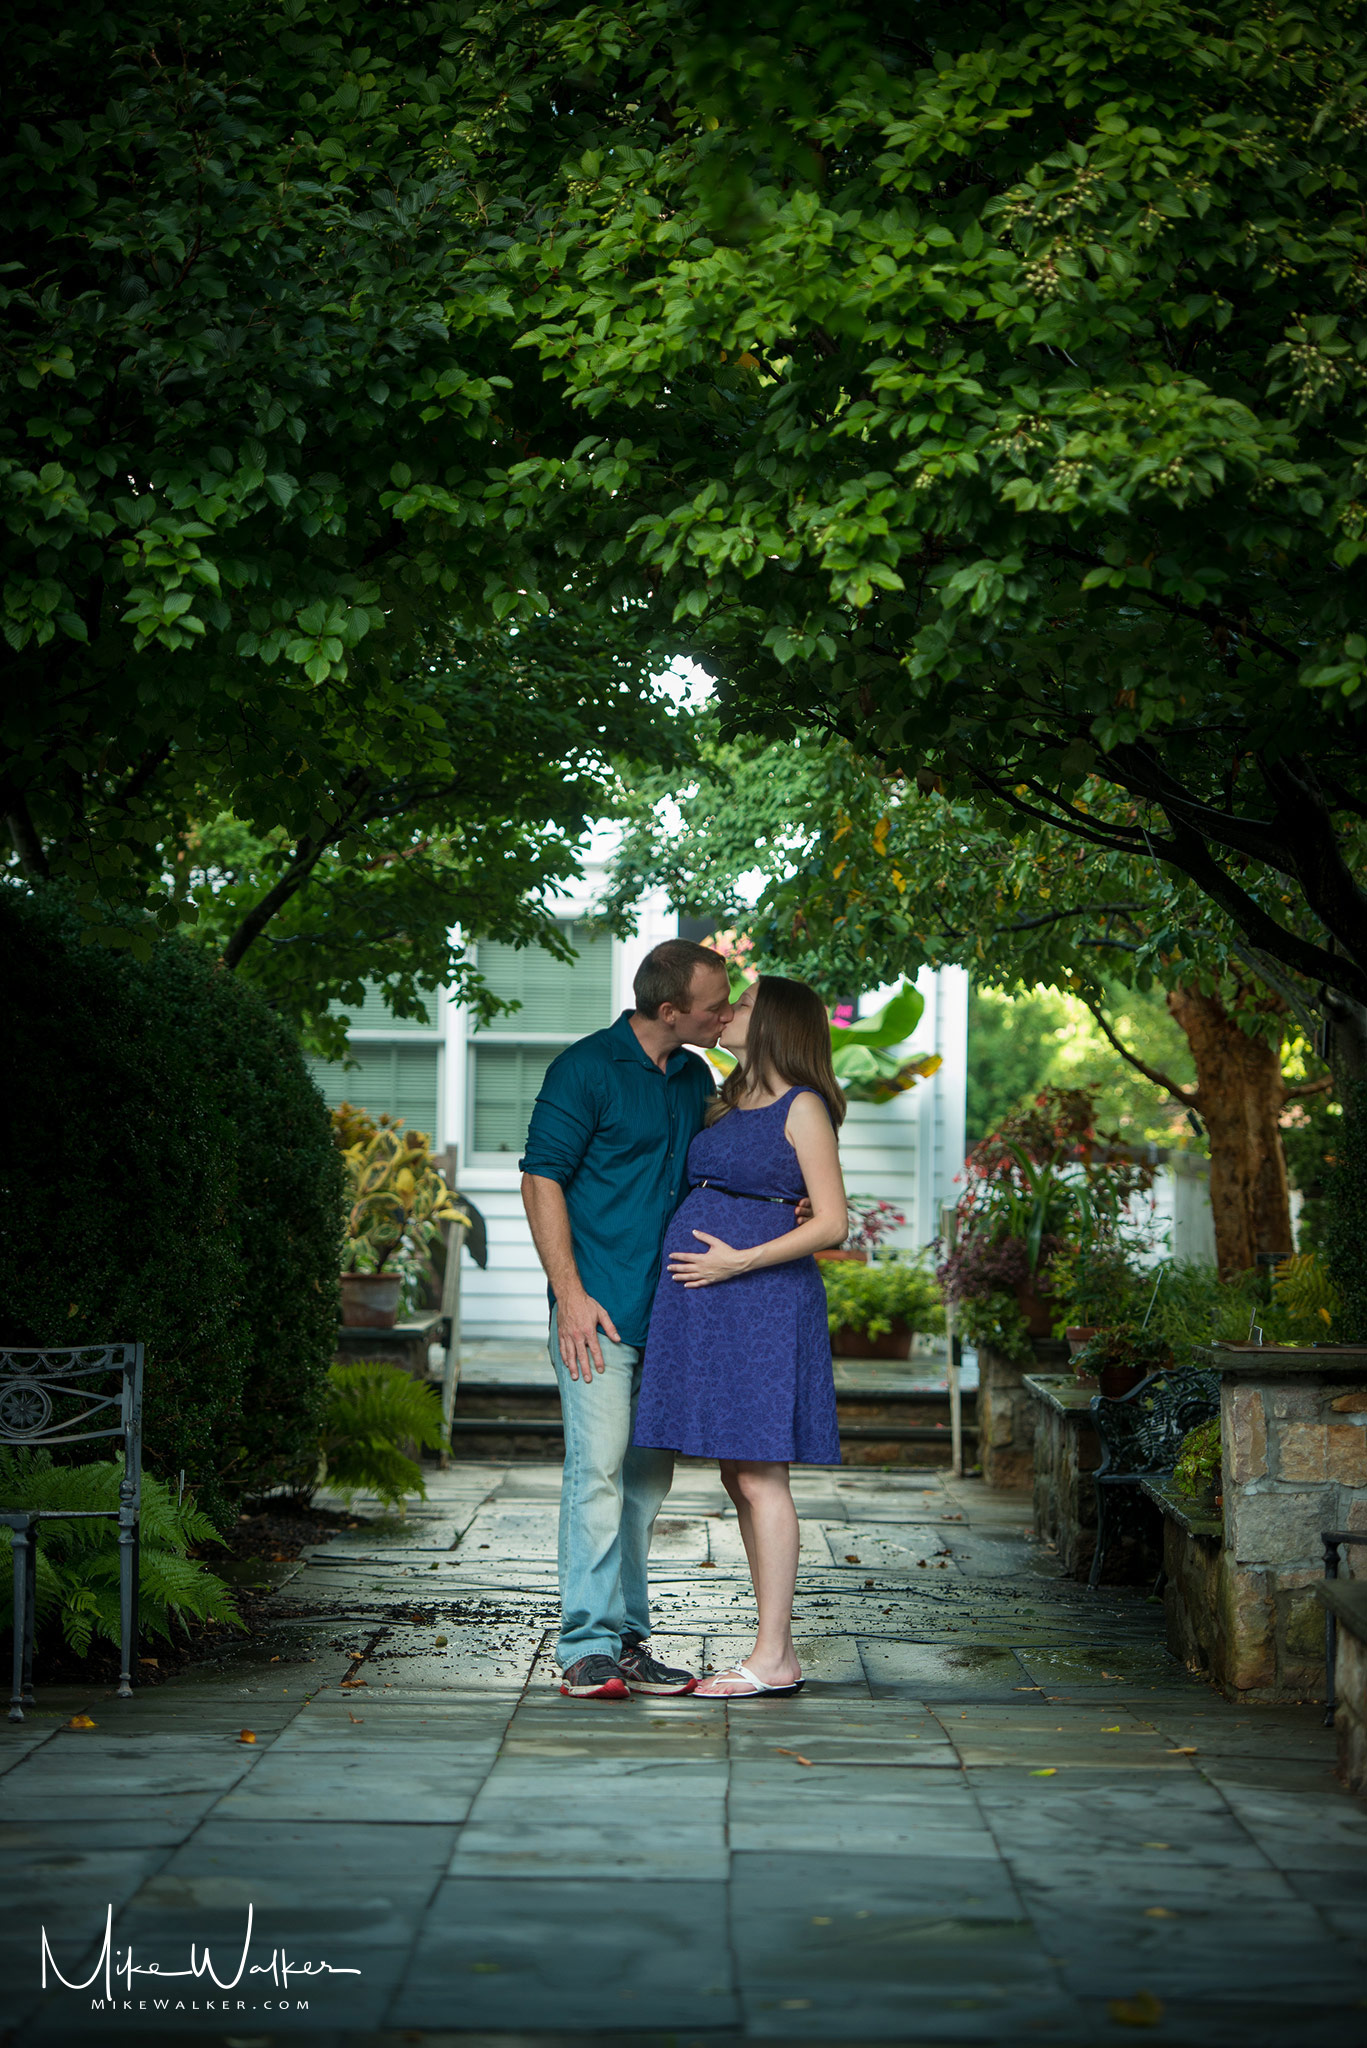 Pregnant couple in a garden. Maternity photography by Mike Walker.